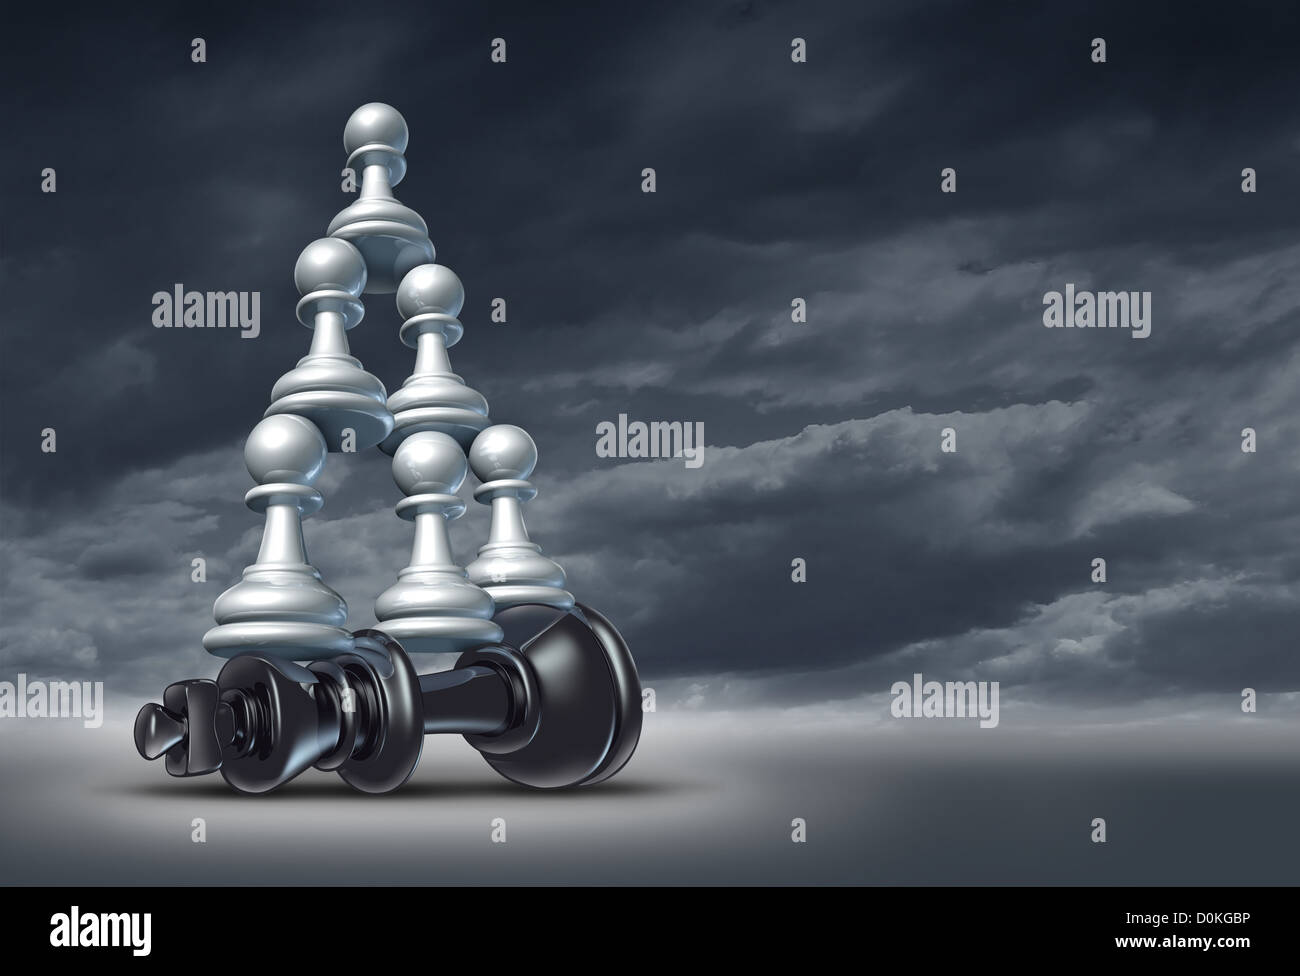 Balance of power and team victory as a business strategy chess symbol of changing the leader by teaming up in partnership - Stock Image